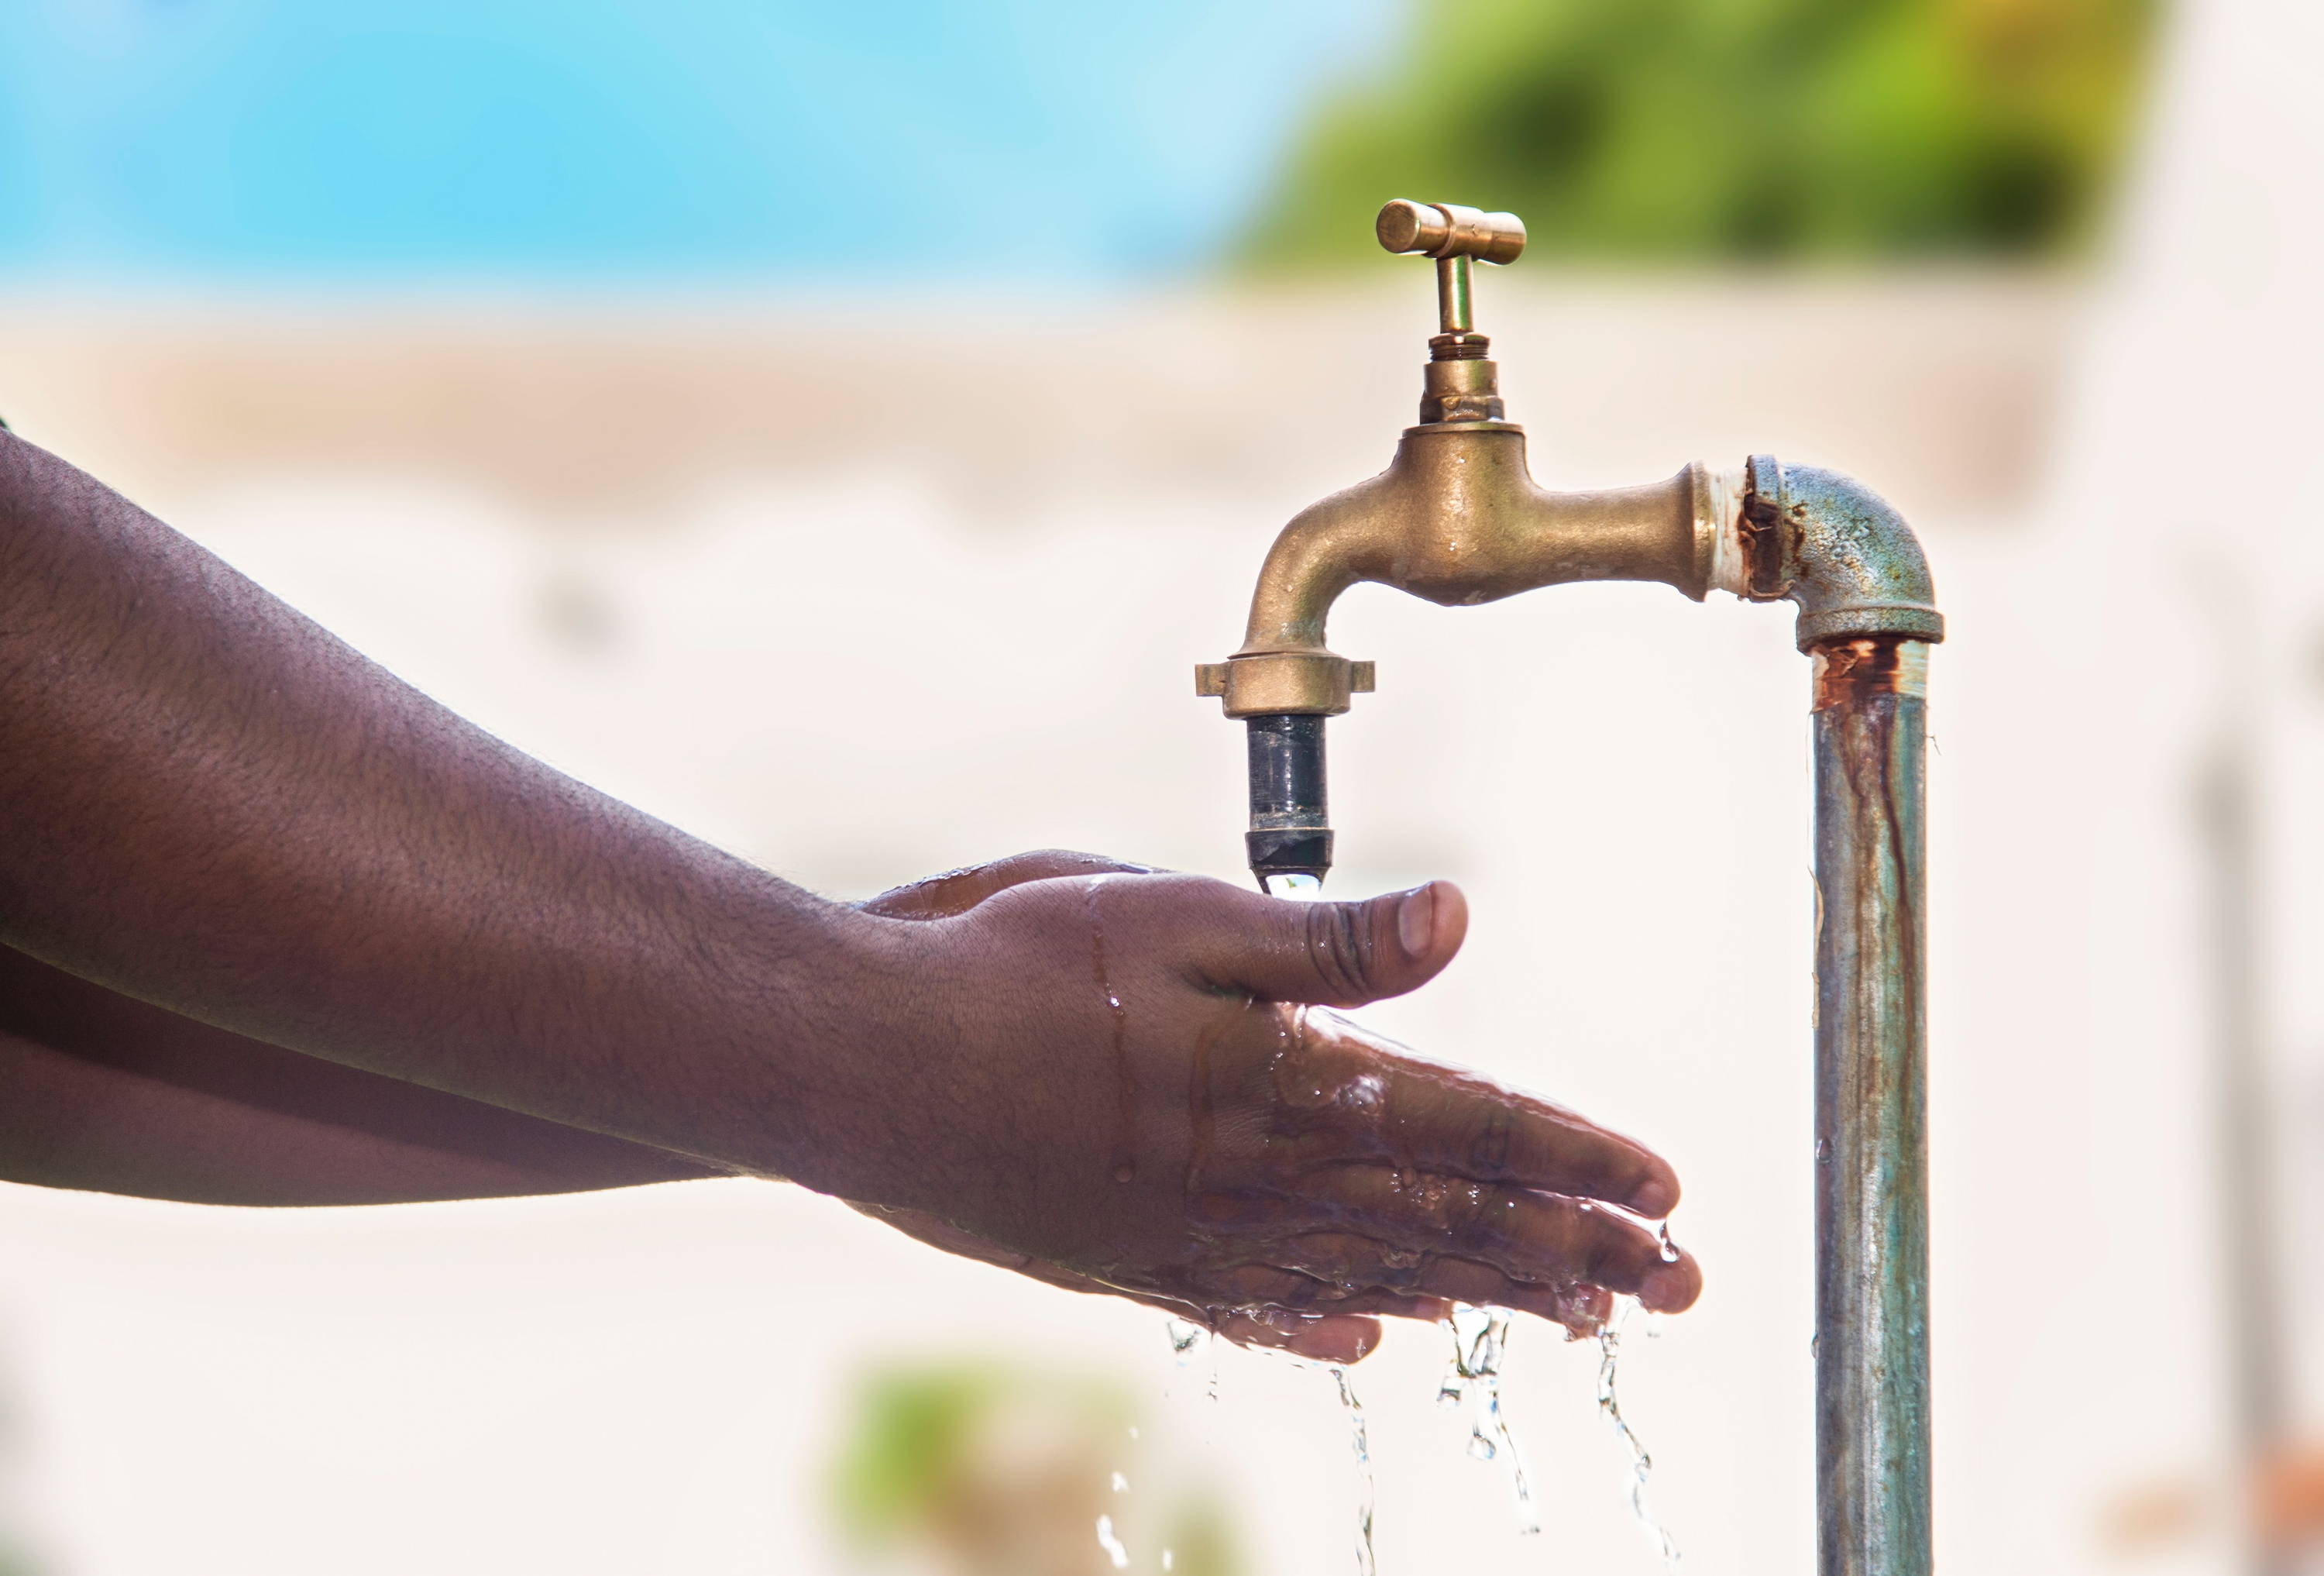 Hands with outdoor tap